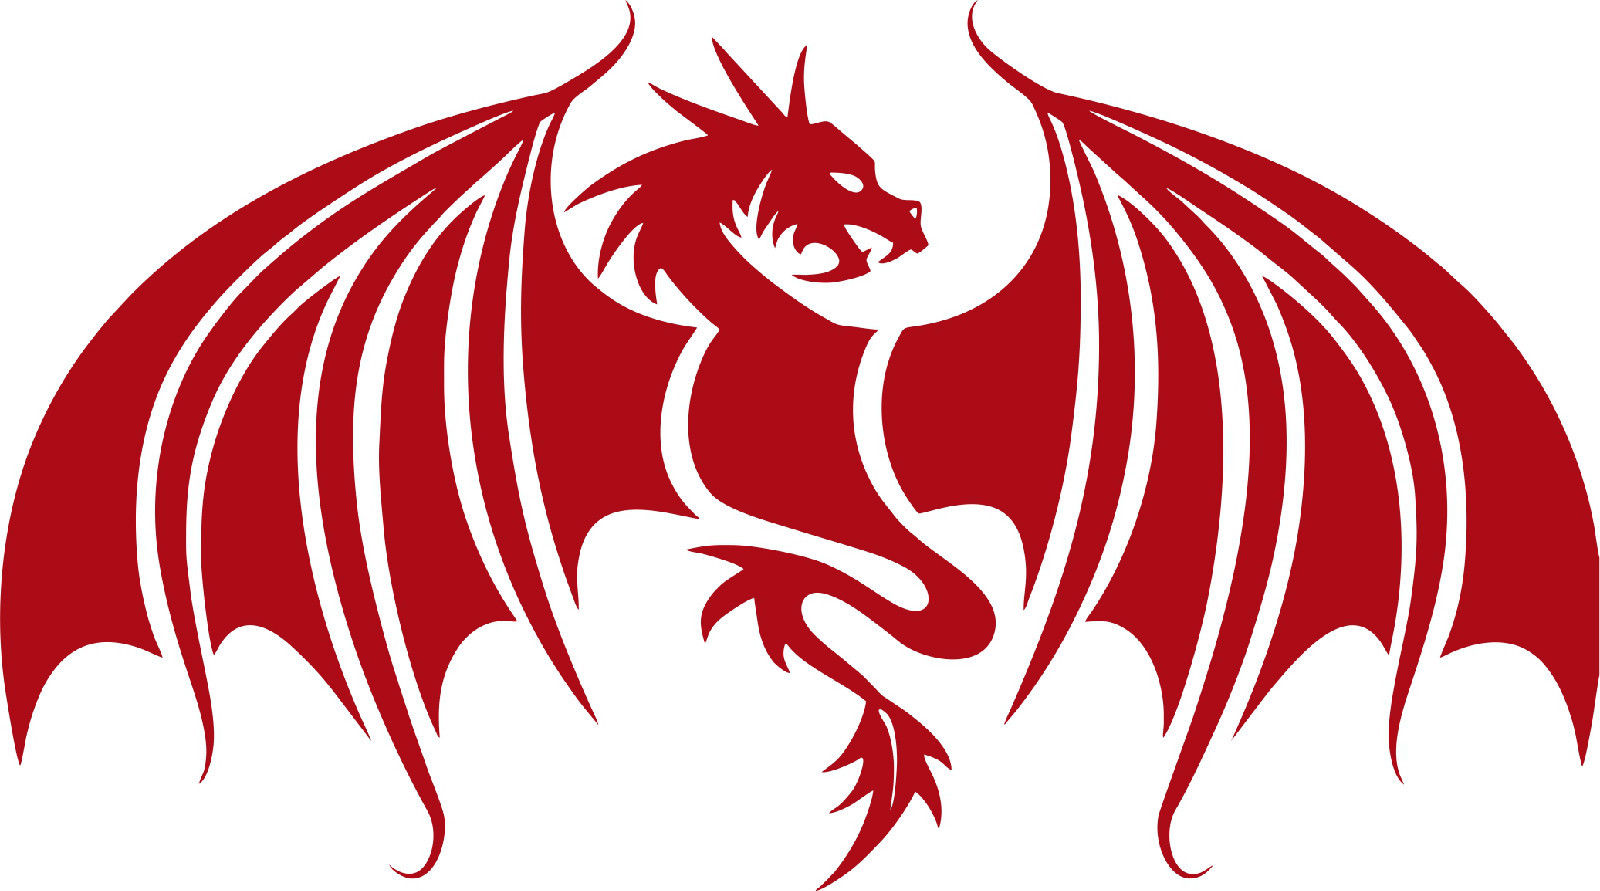 Dragon Wings Mythical Creature Car Truck Window Laptop Vinyl Decal Sticker - 6""